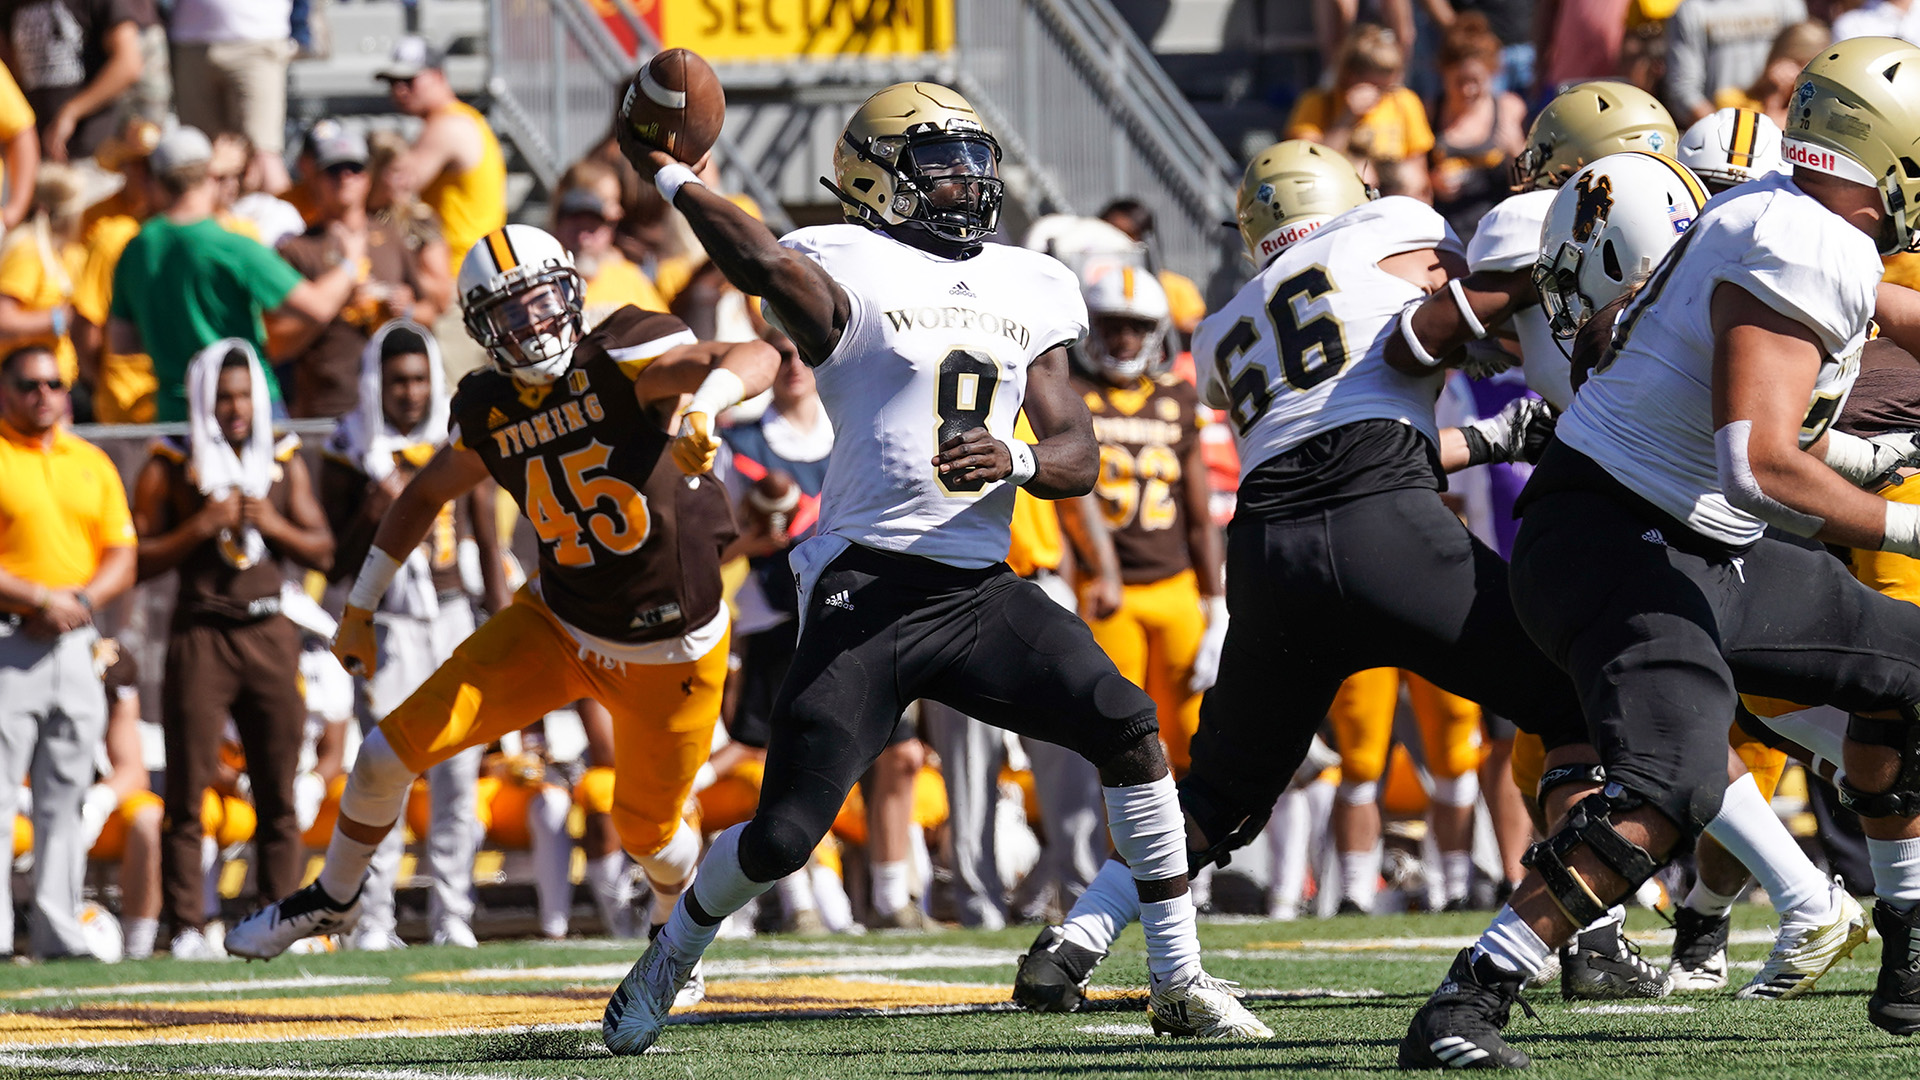 Football Falls At Wyoming 17-14 - Wofford College Athletics